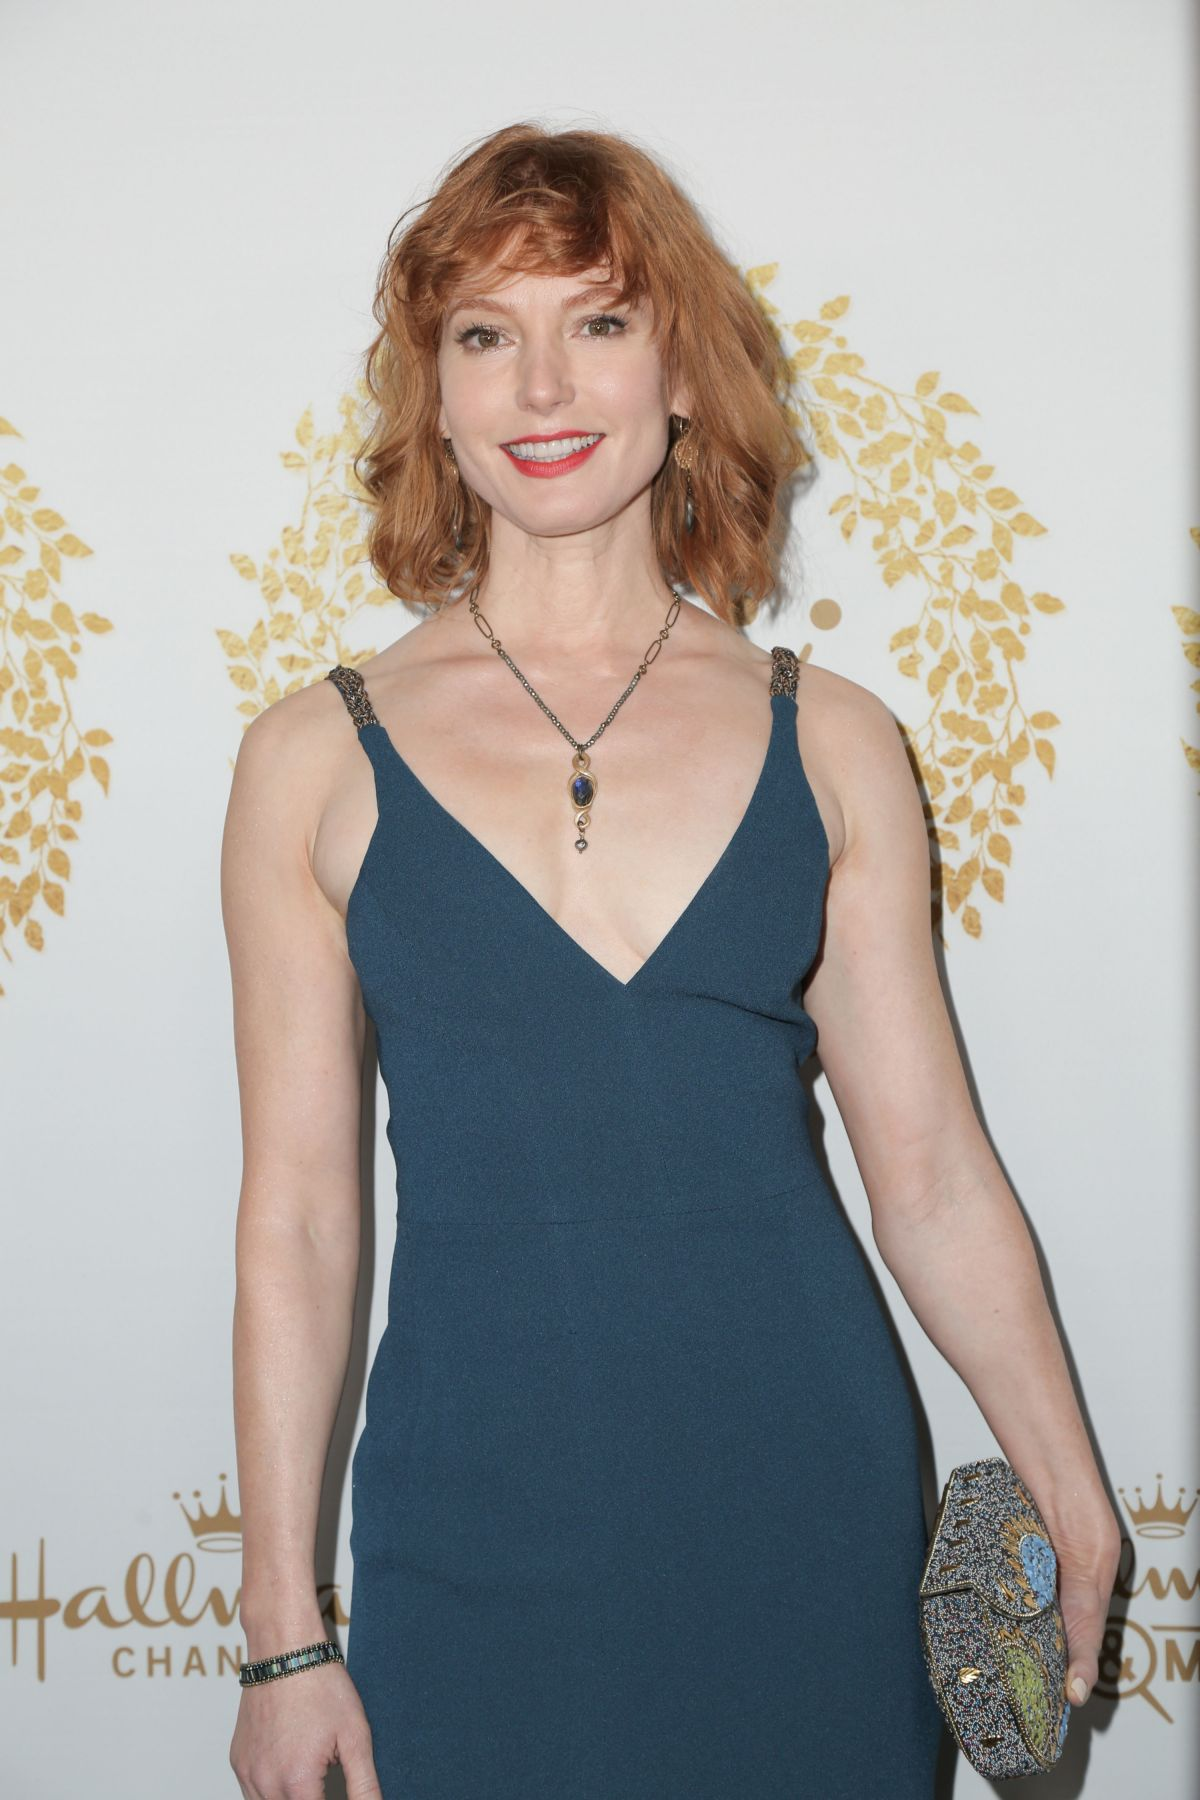 alicia witt at hallmark channel hallmark movies mysteries 2019 winter tca tour in pasadena. Black Bedroom Furniture Sets. Home Design Ideas